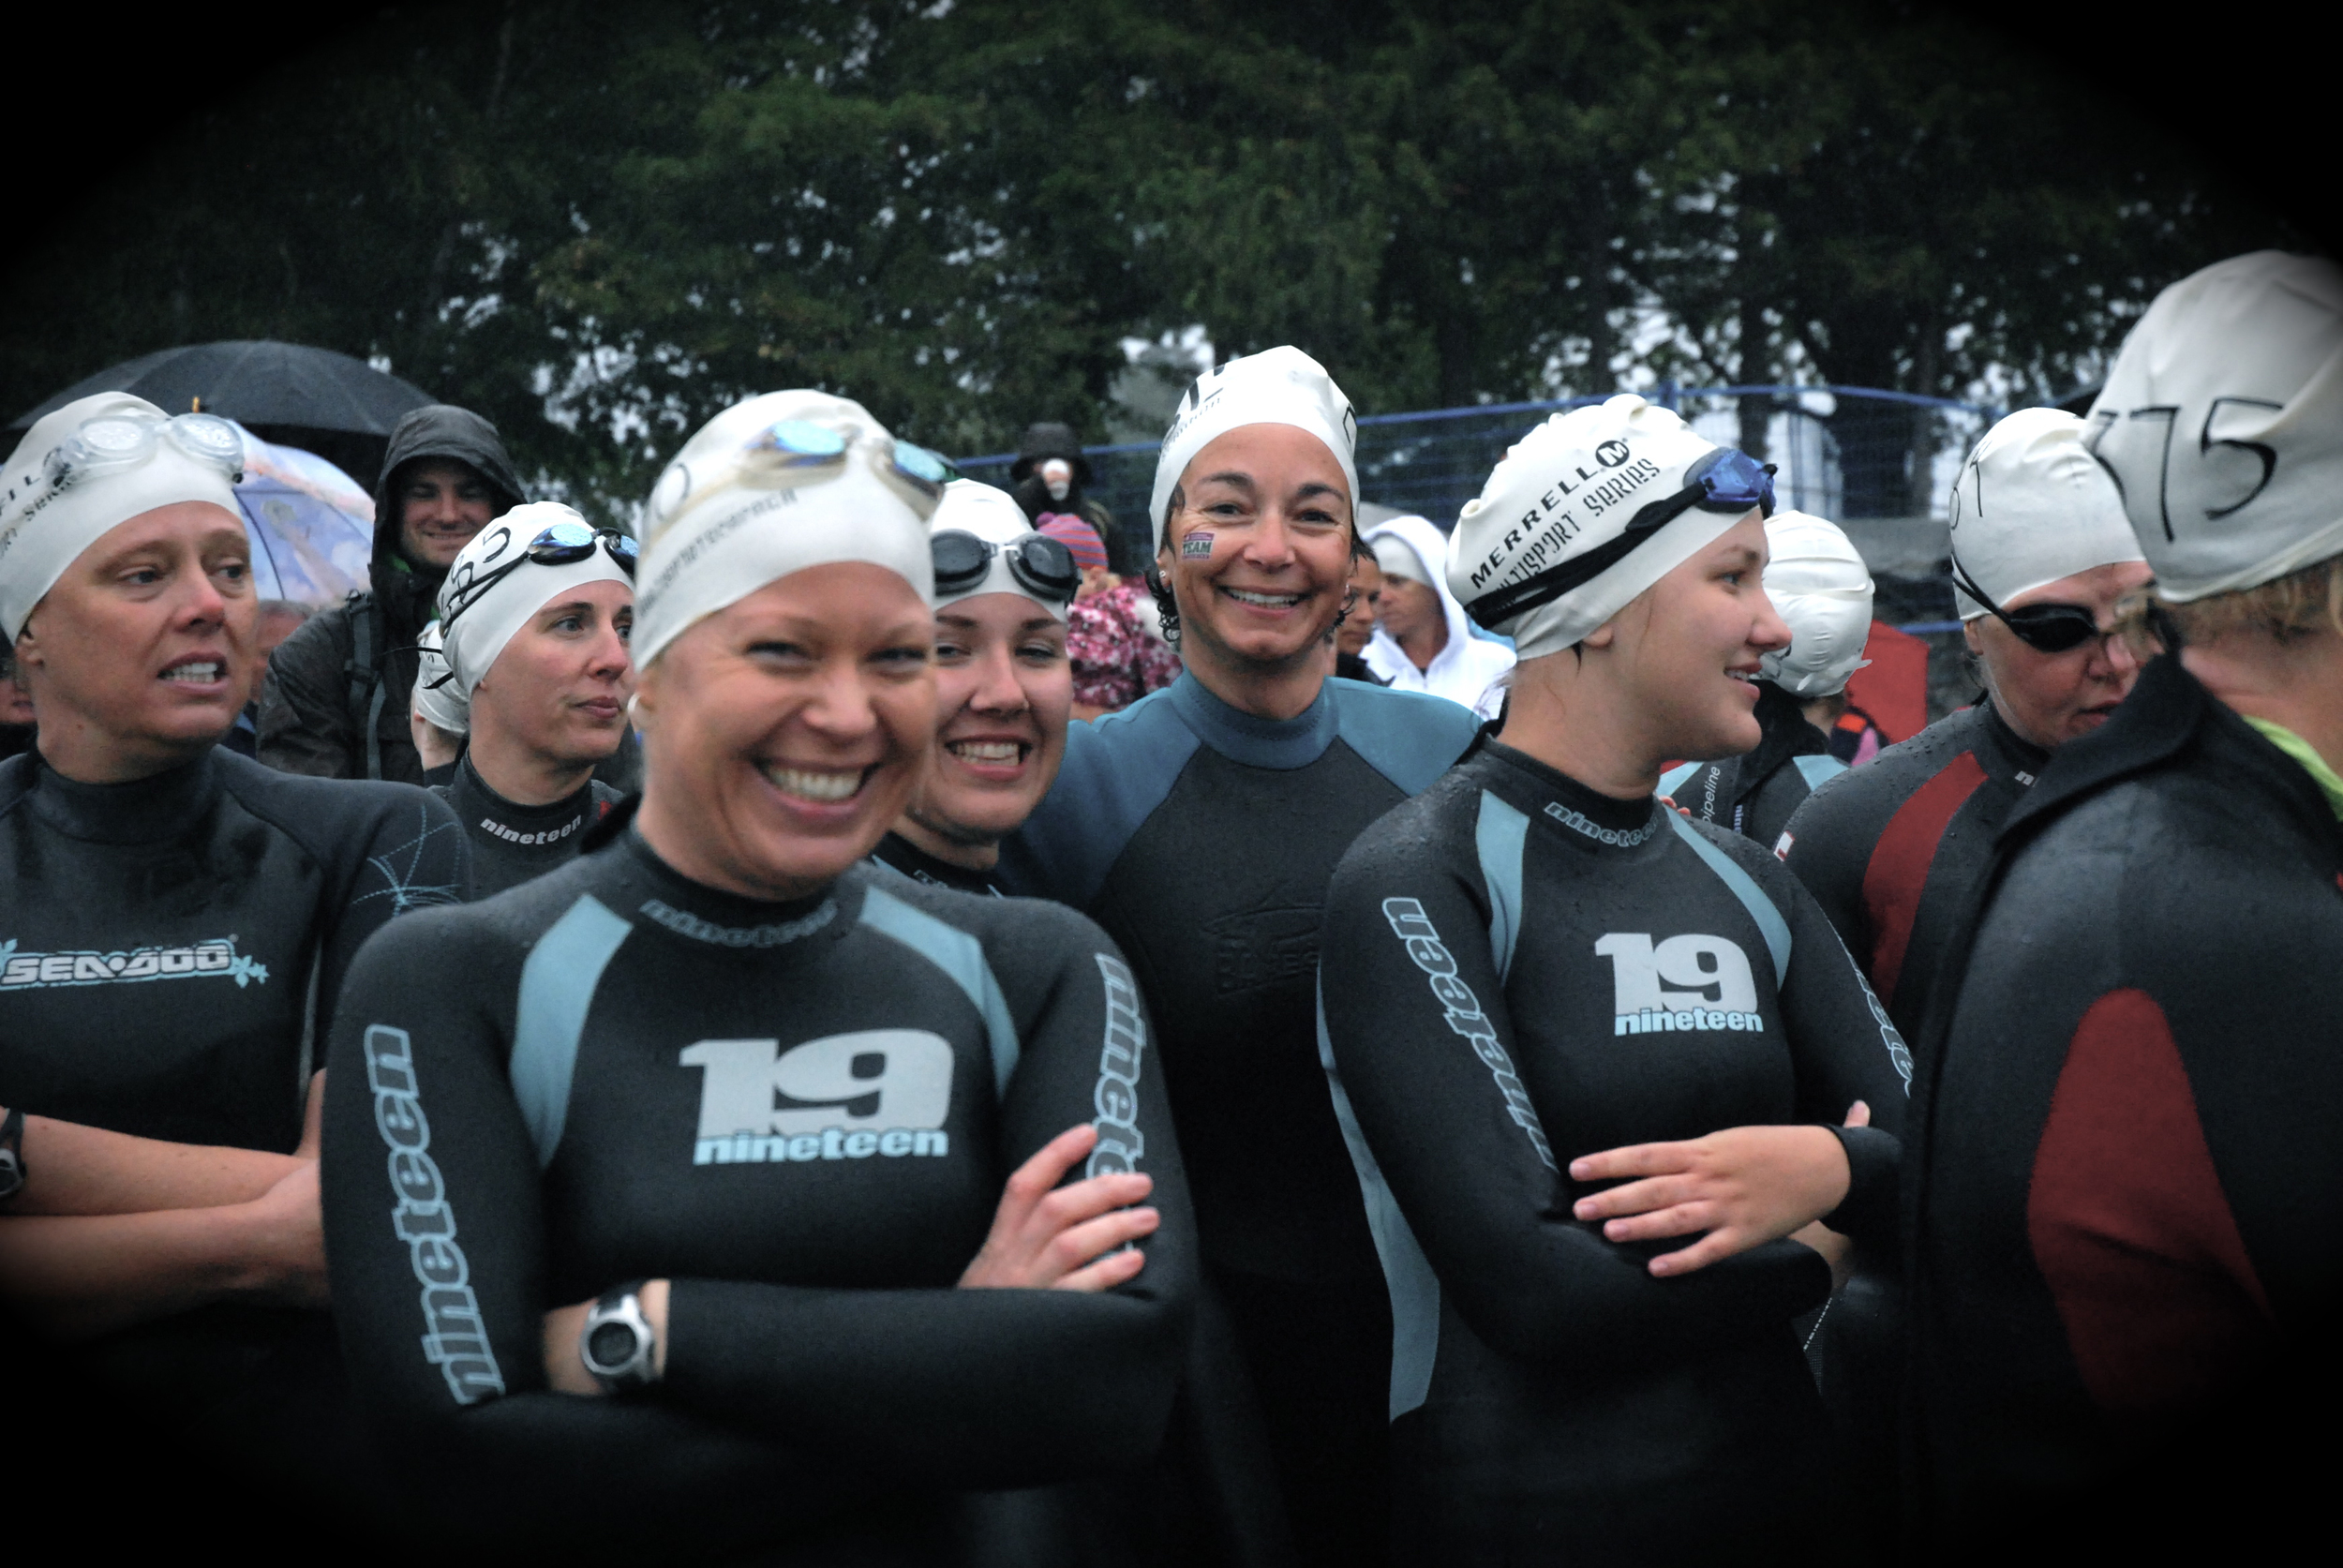 Ahearne-triathlon.jpg